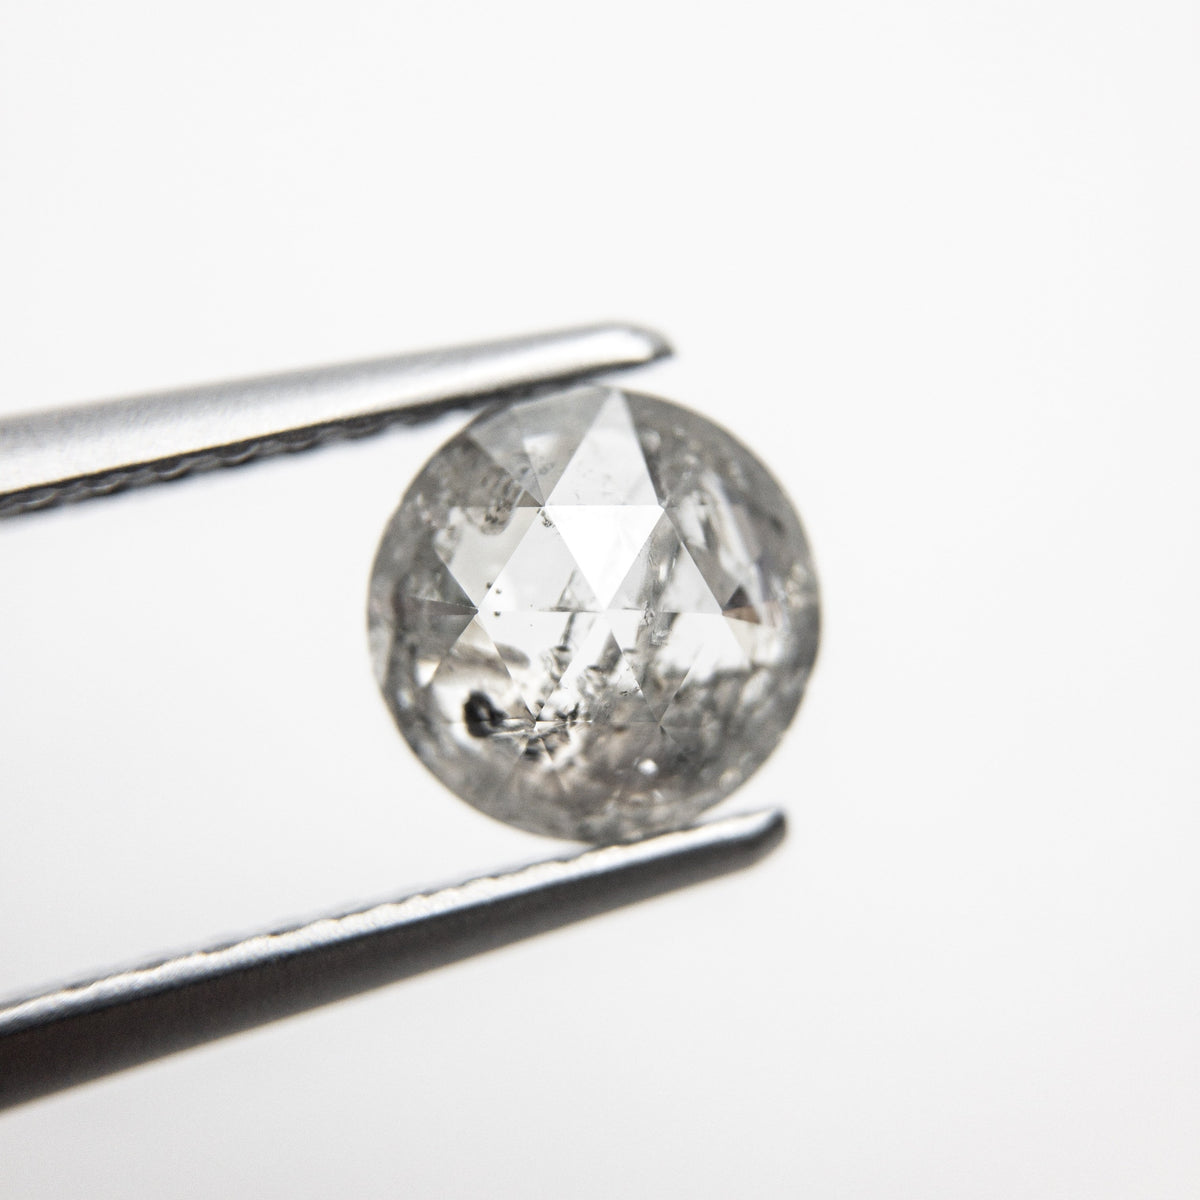 1.08ct 6.36x6.32x3.47mm Round Double Cut 18094-35